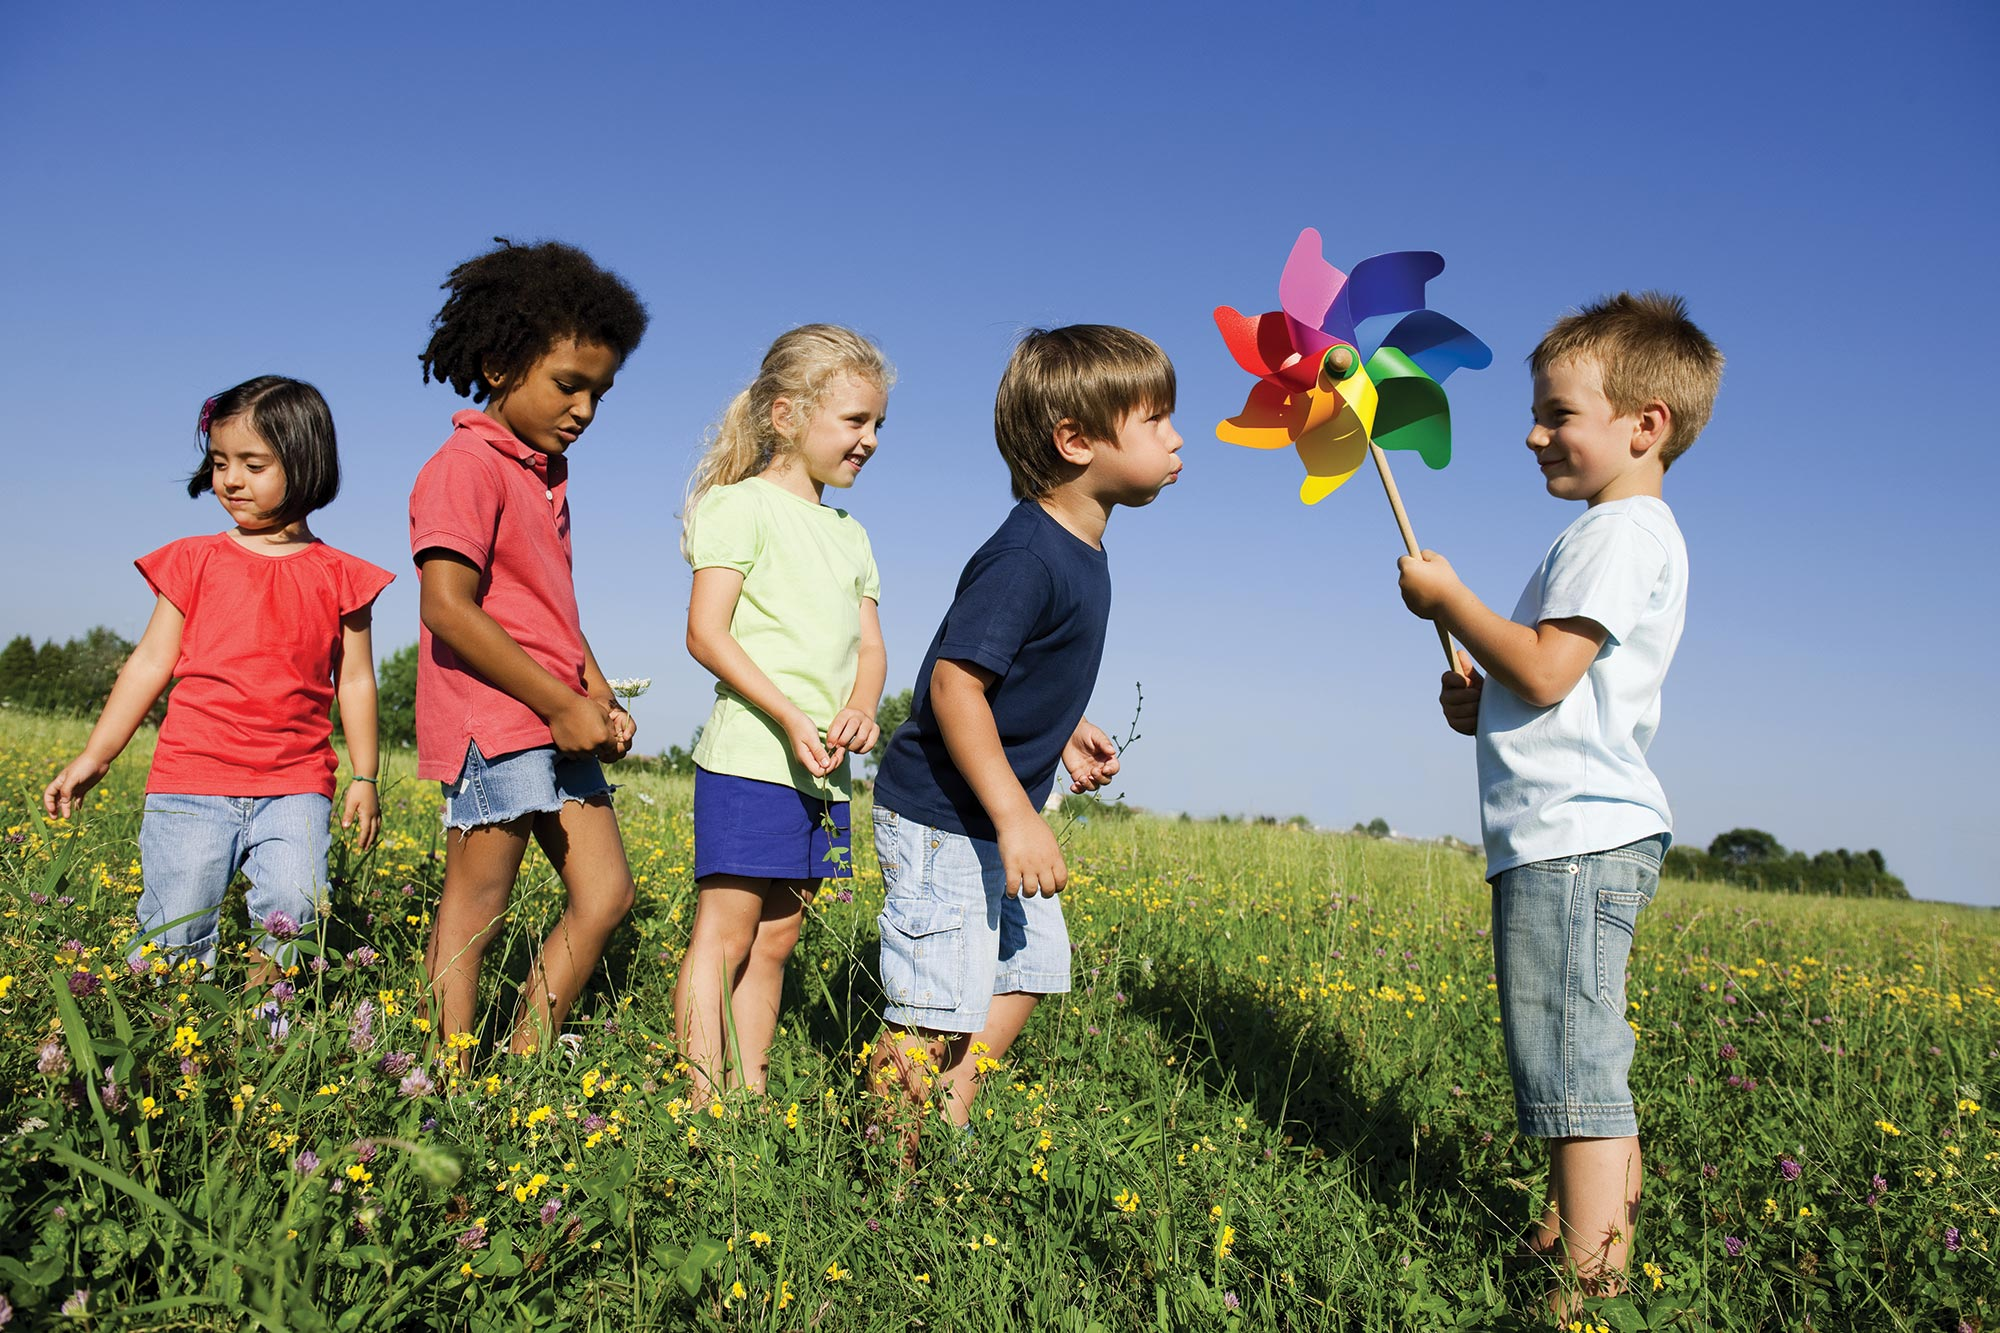 Children play with a pinwheel